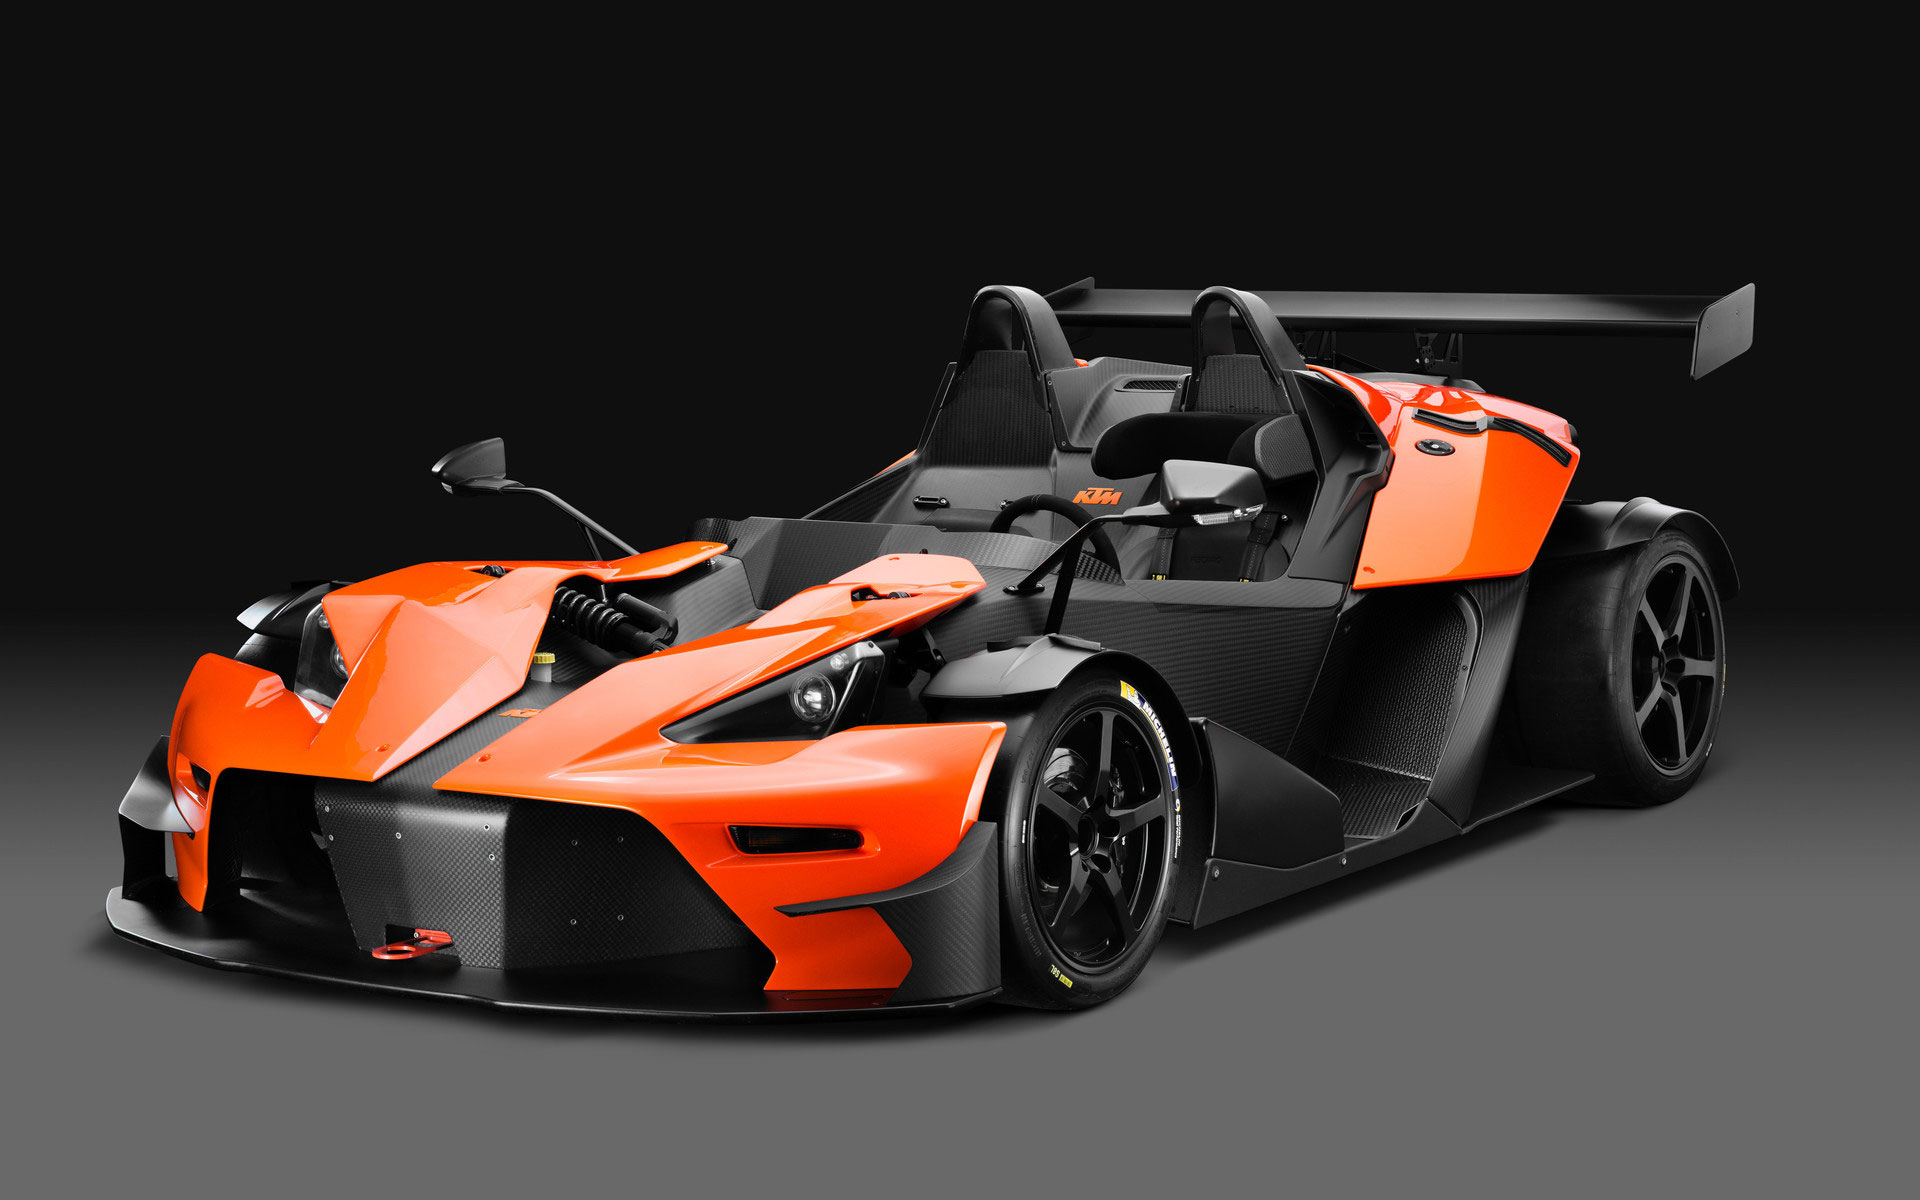 2017 ktm x bow rr review - X bow ktm ...